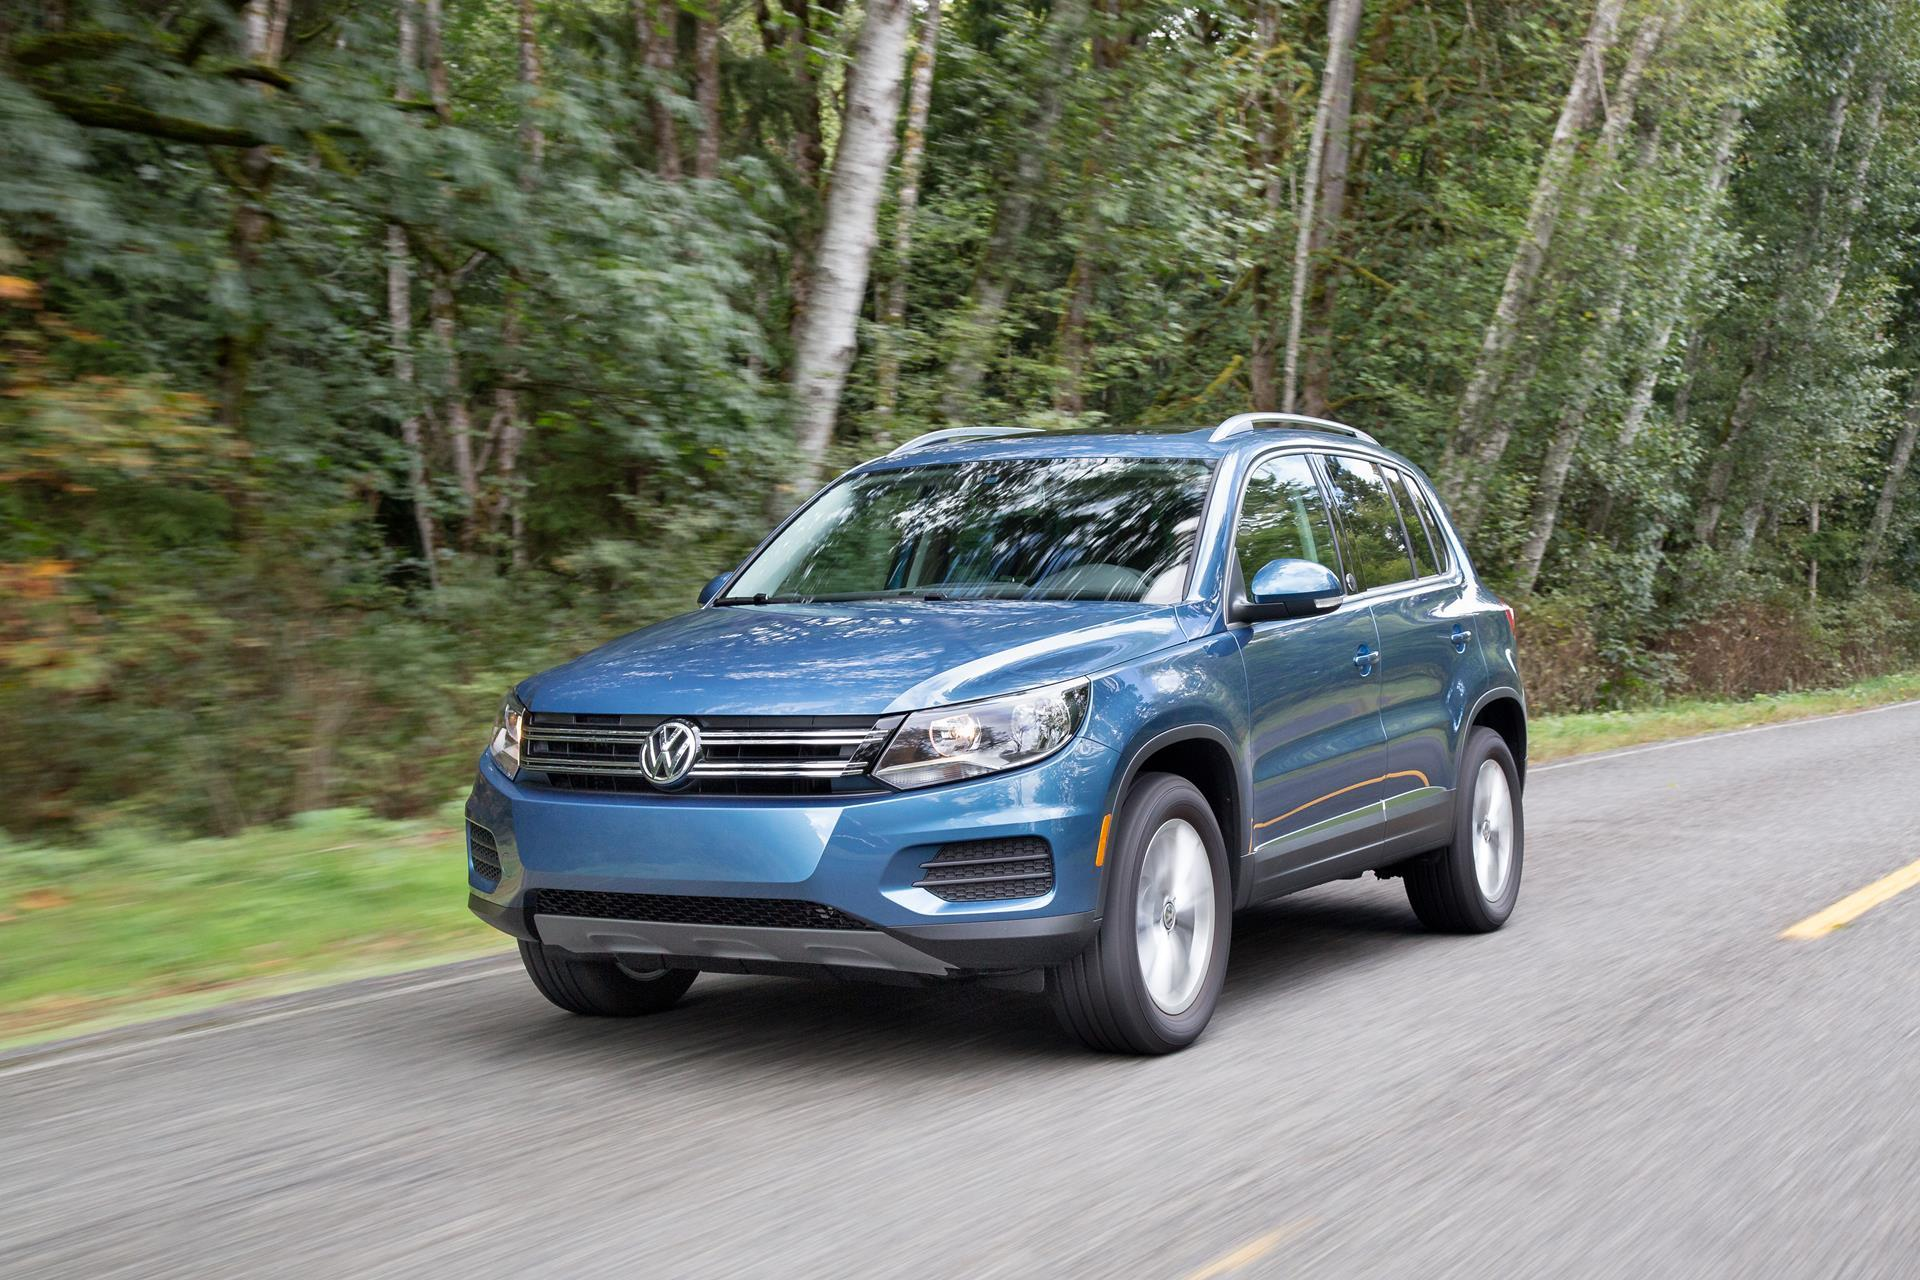 2017 volkswagen tiguan news and information. Black Bedroom Furniture Sets. Home Design Ideas